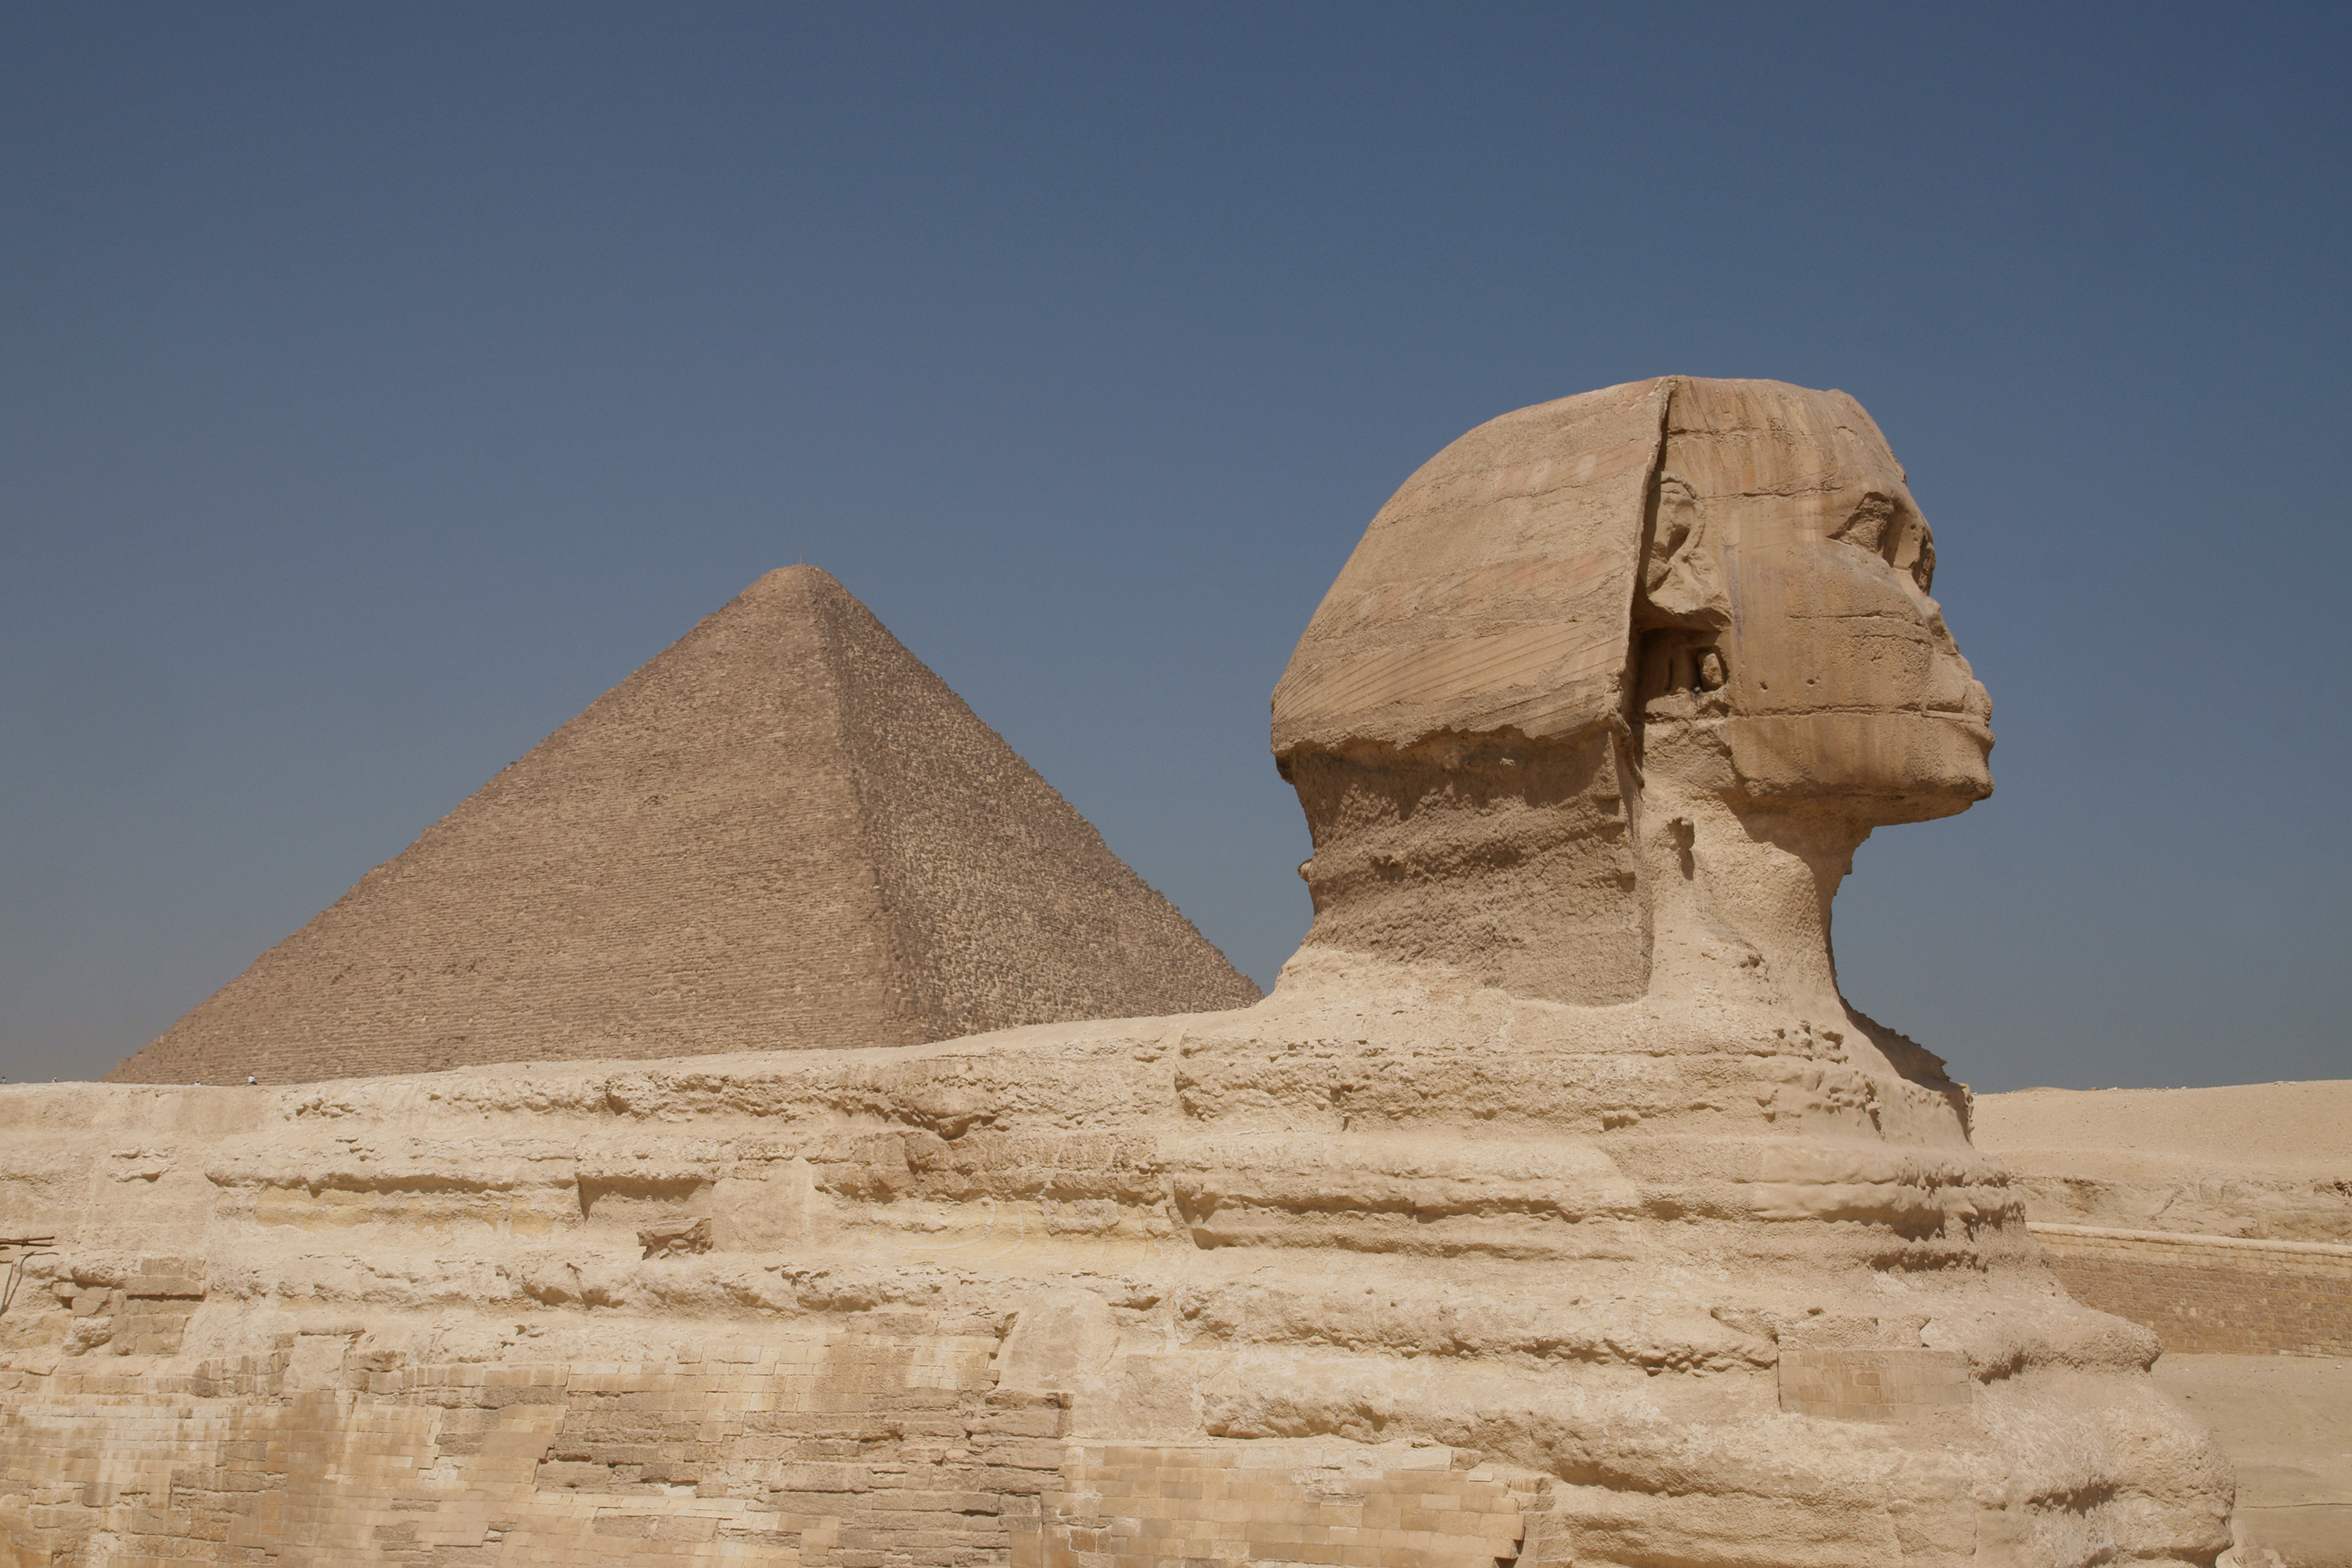 Fichier:Great Sphinx of Giza and Pyramid of Cheops.jpg ...